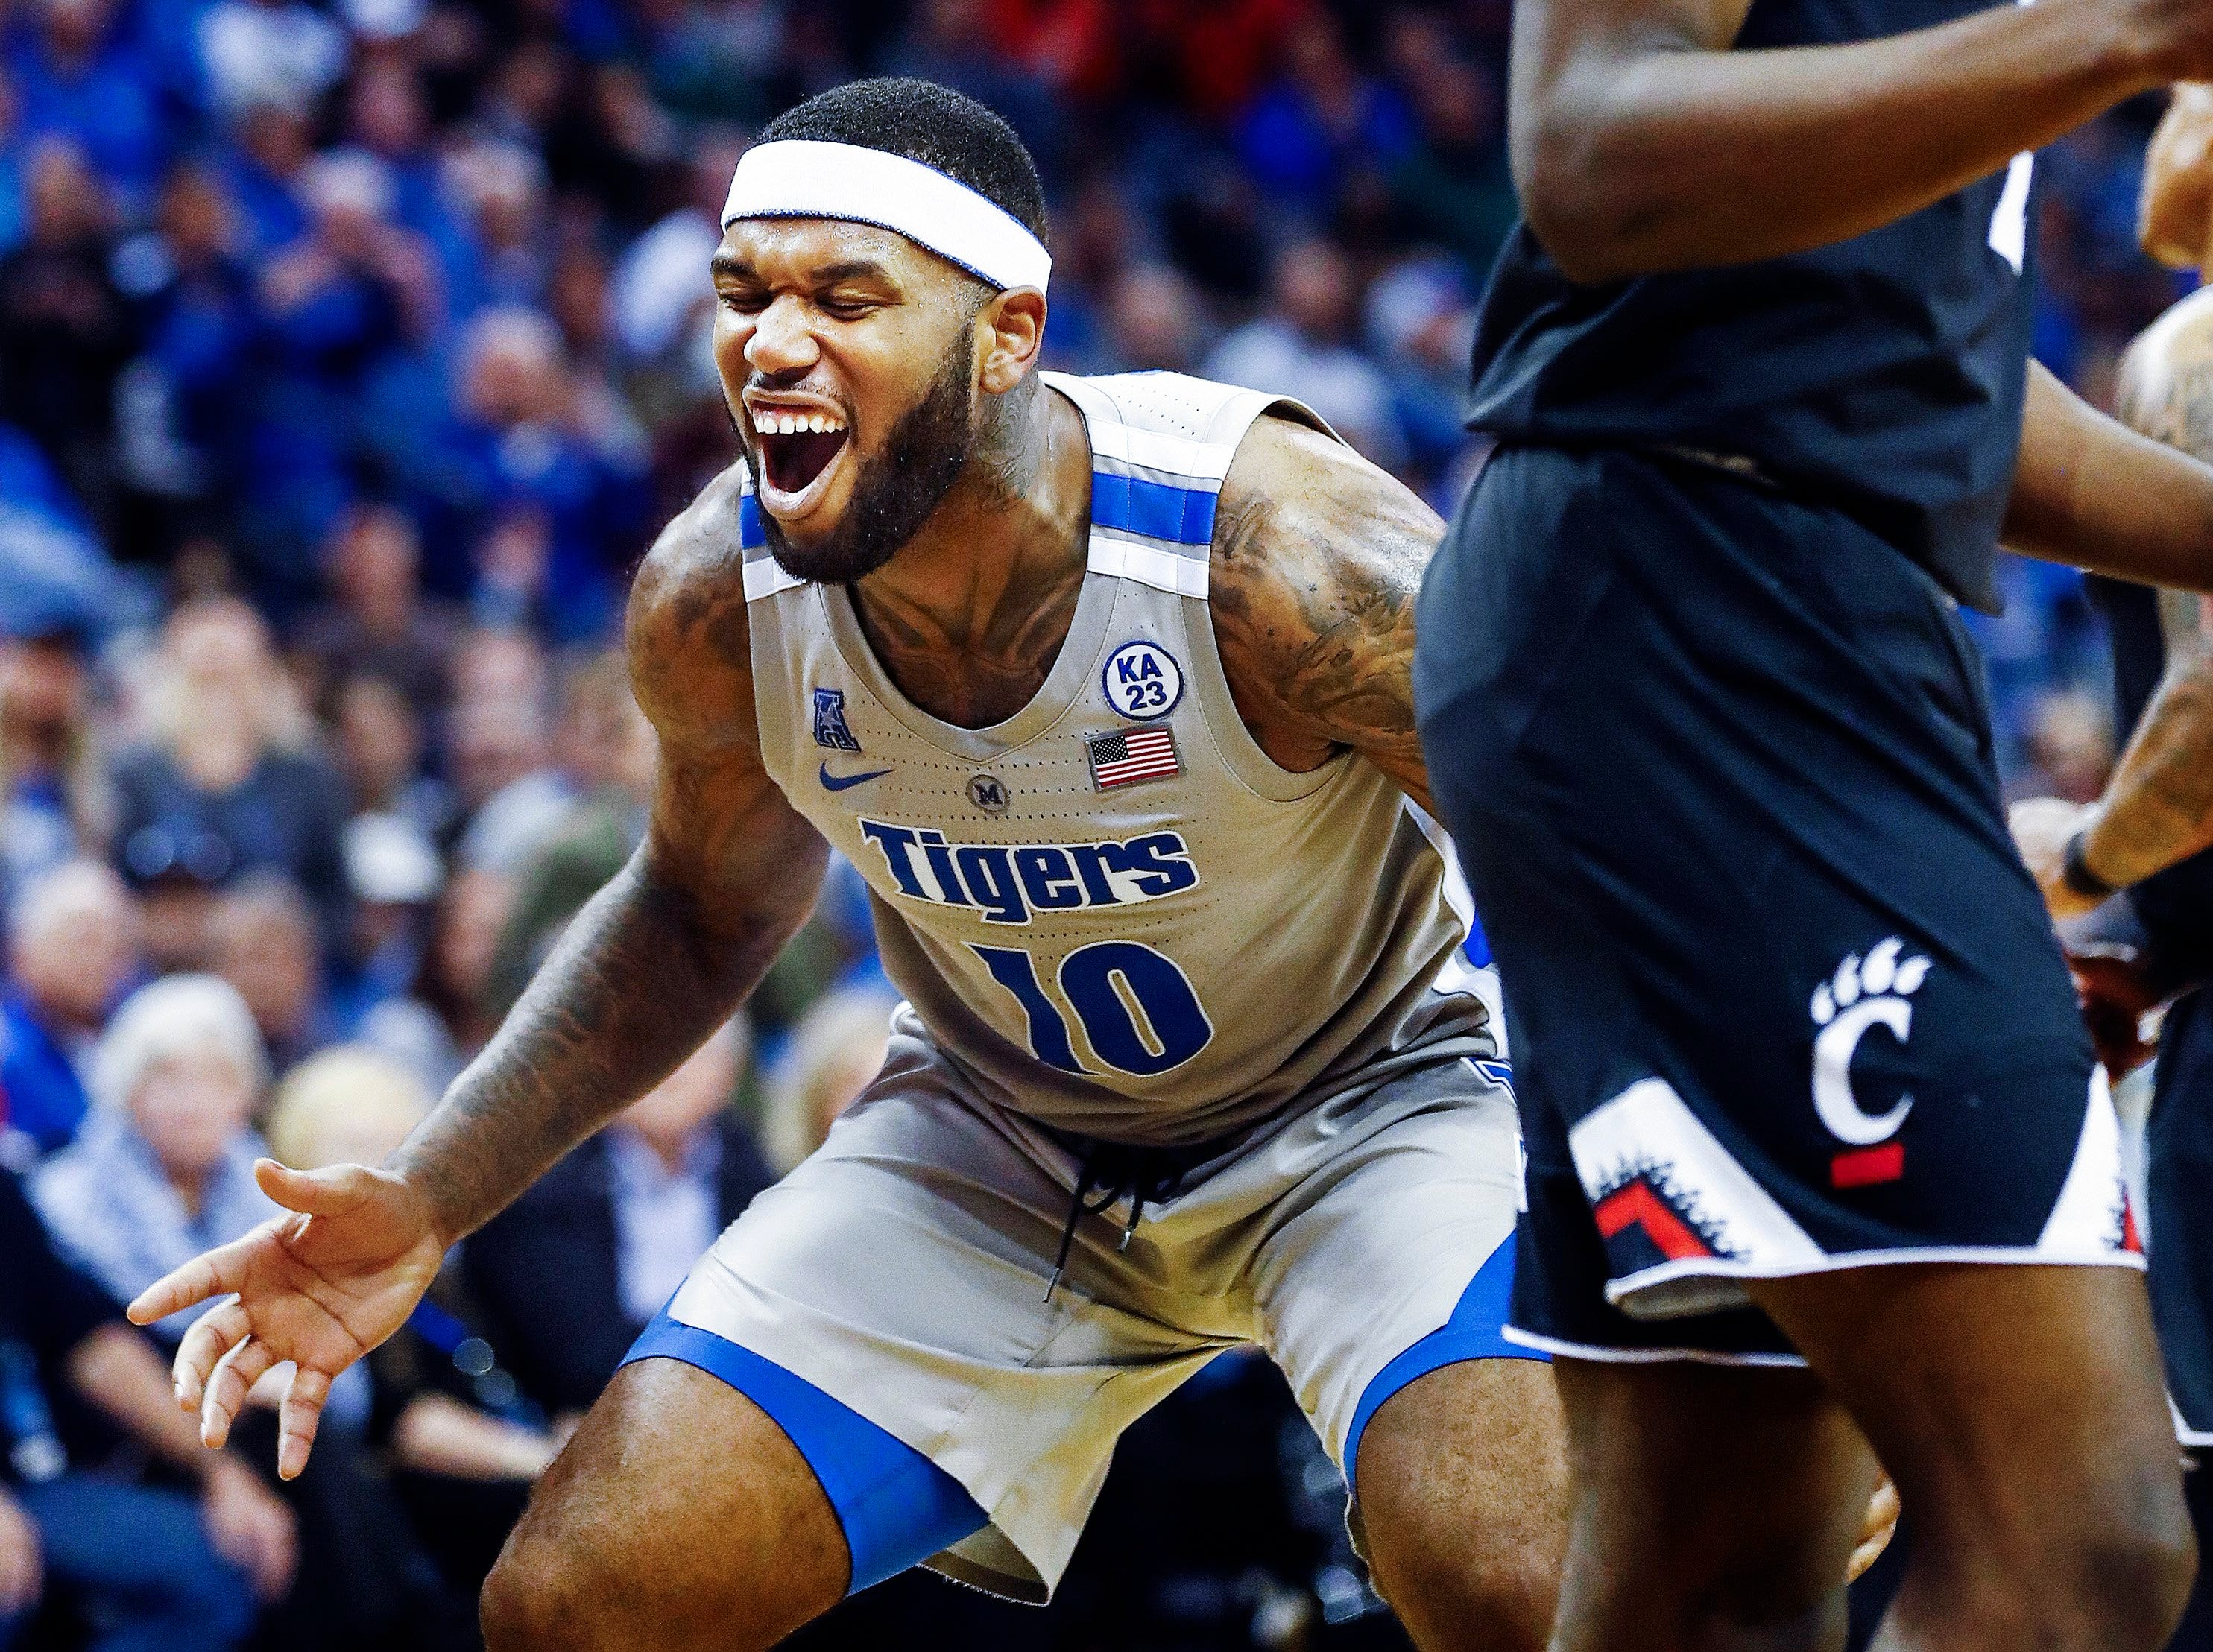 Memphis forward Mike Parks Jr. reacts after missing a shot against the Cincinnati defense during action at the FedExForum, Thursday, February 7, 2019.